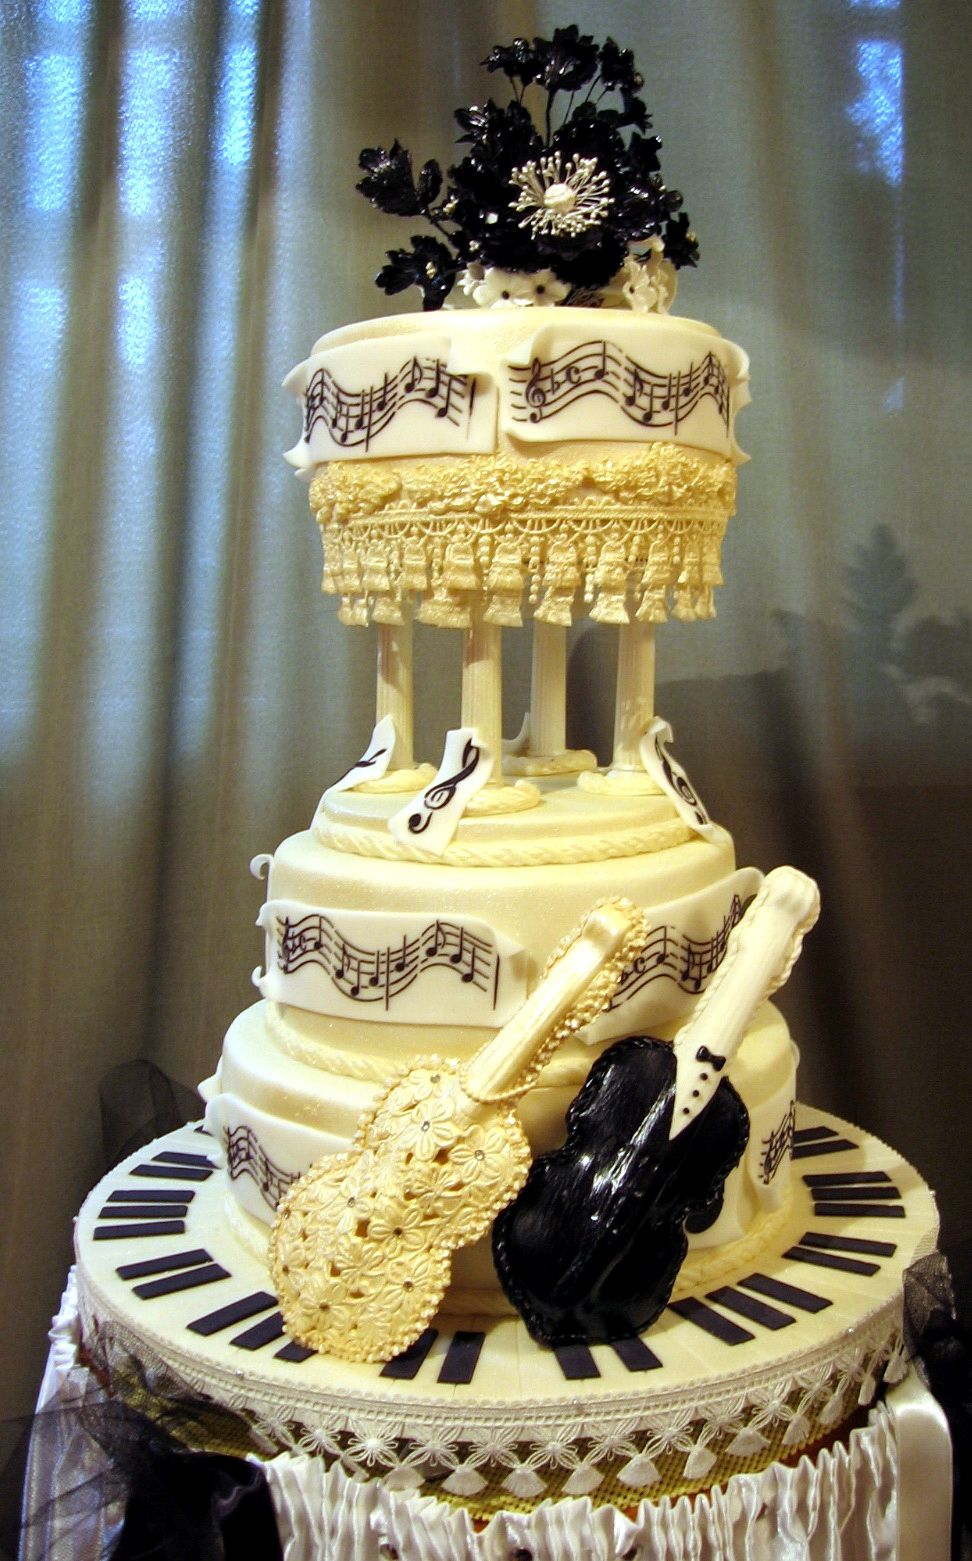 Wedding cakes for musicians musical wedding cake music musical wedding cakes for musicians musical wedding cake music musical instruments junglespirit Image collections